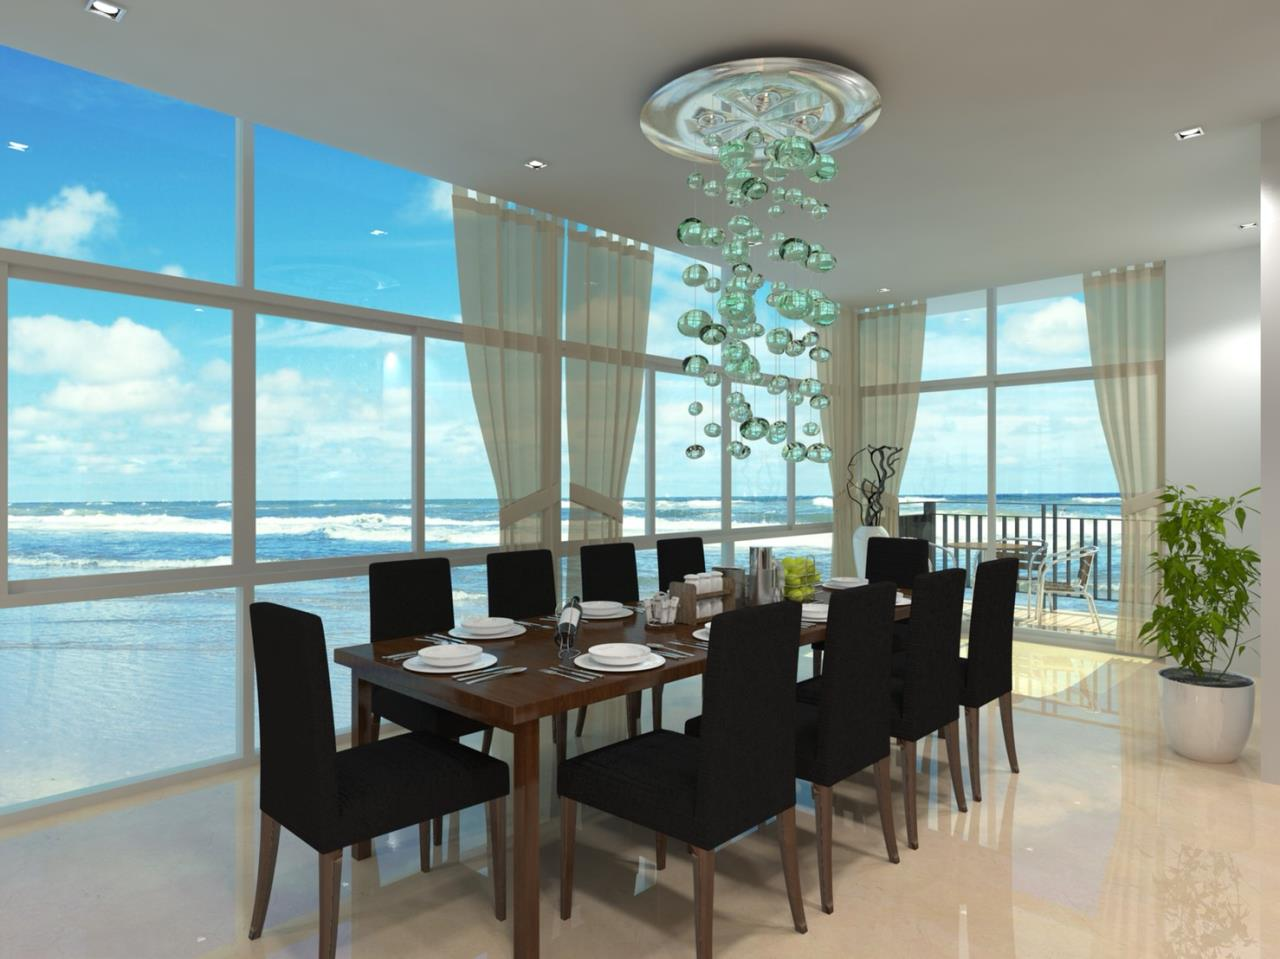 Signature Realty ( Thailand ) Co Ltd Agency's Furnished 1bedroom 46 sq.m condo with jacuzzi floor 21-31 at The Grand Jomtein Beach Pattaya 32